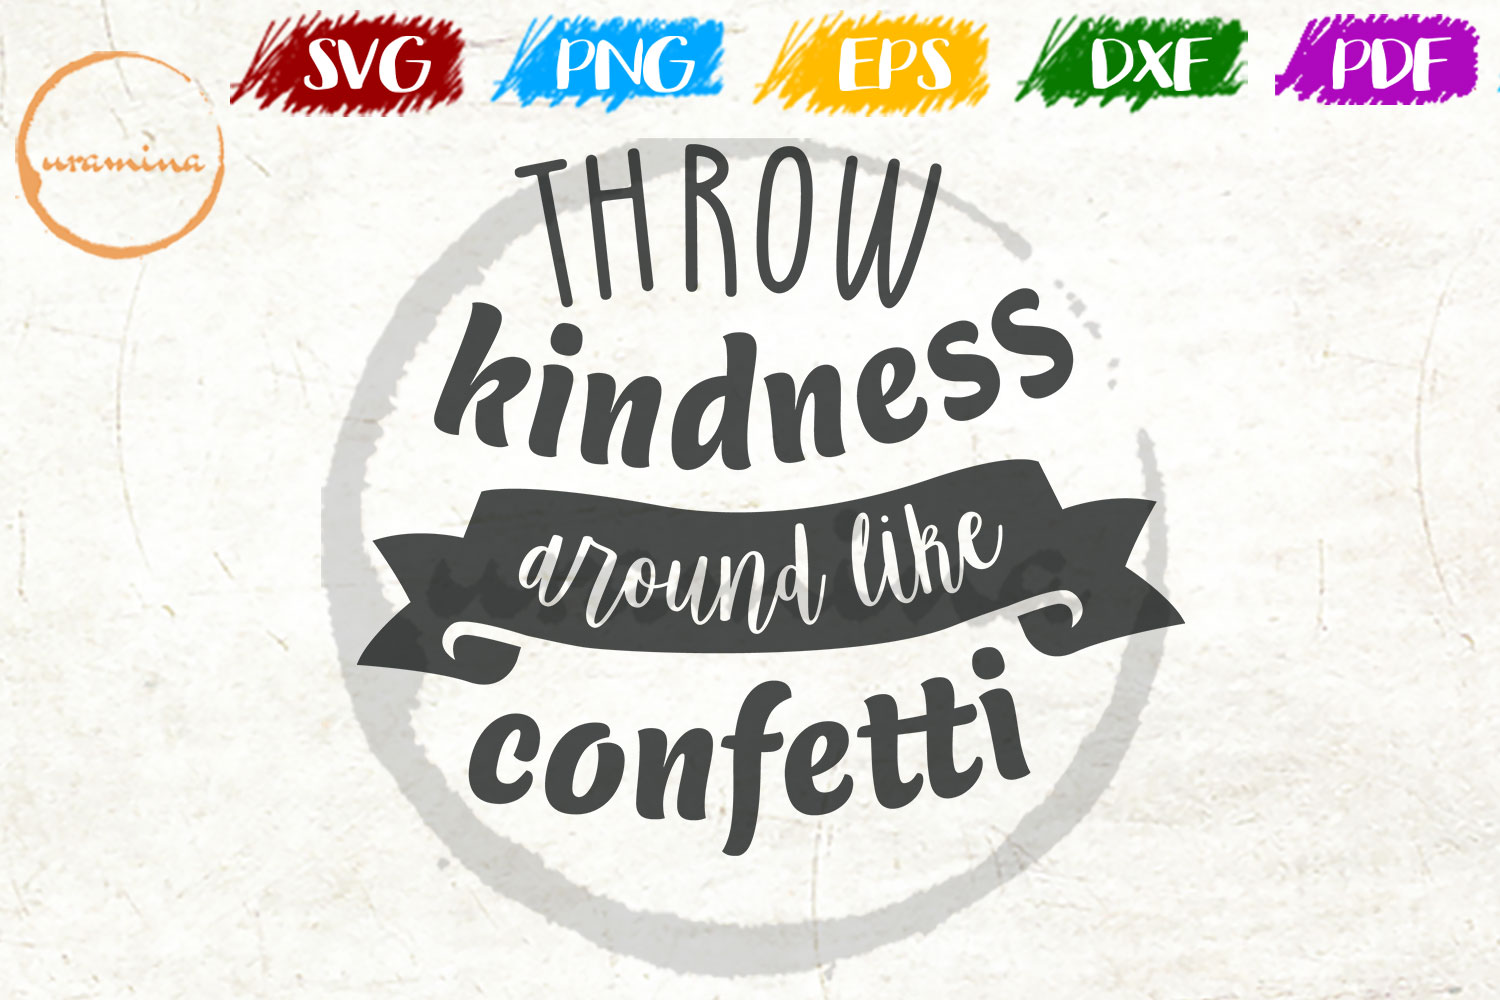 Download Free Throw Kindness Around Like Confetti Graphic By Uramina for Cricut Explore, Silhouette and other cutting machines.